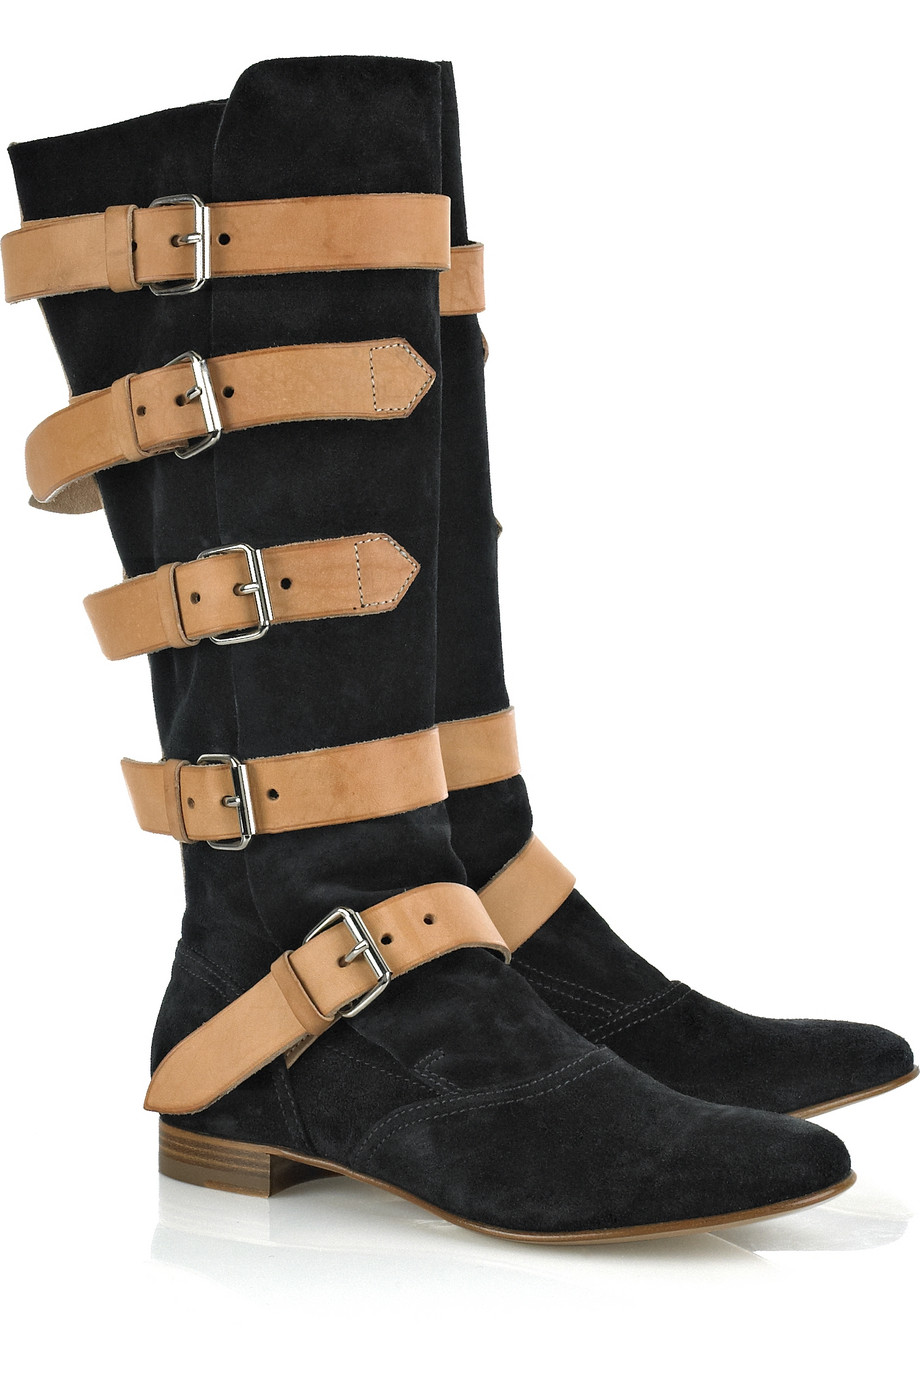 Vivienne Westwood Suede Pirate Boot In Black Lyst